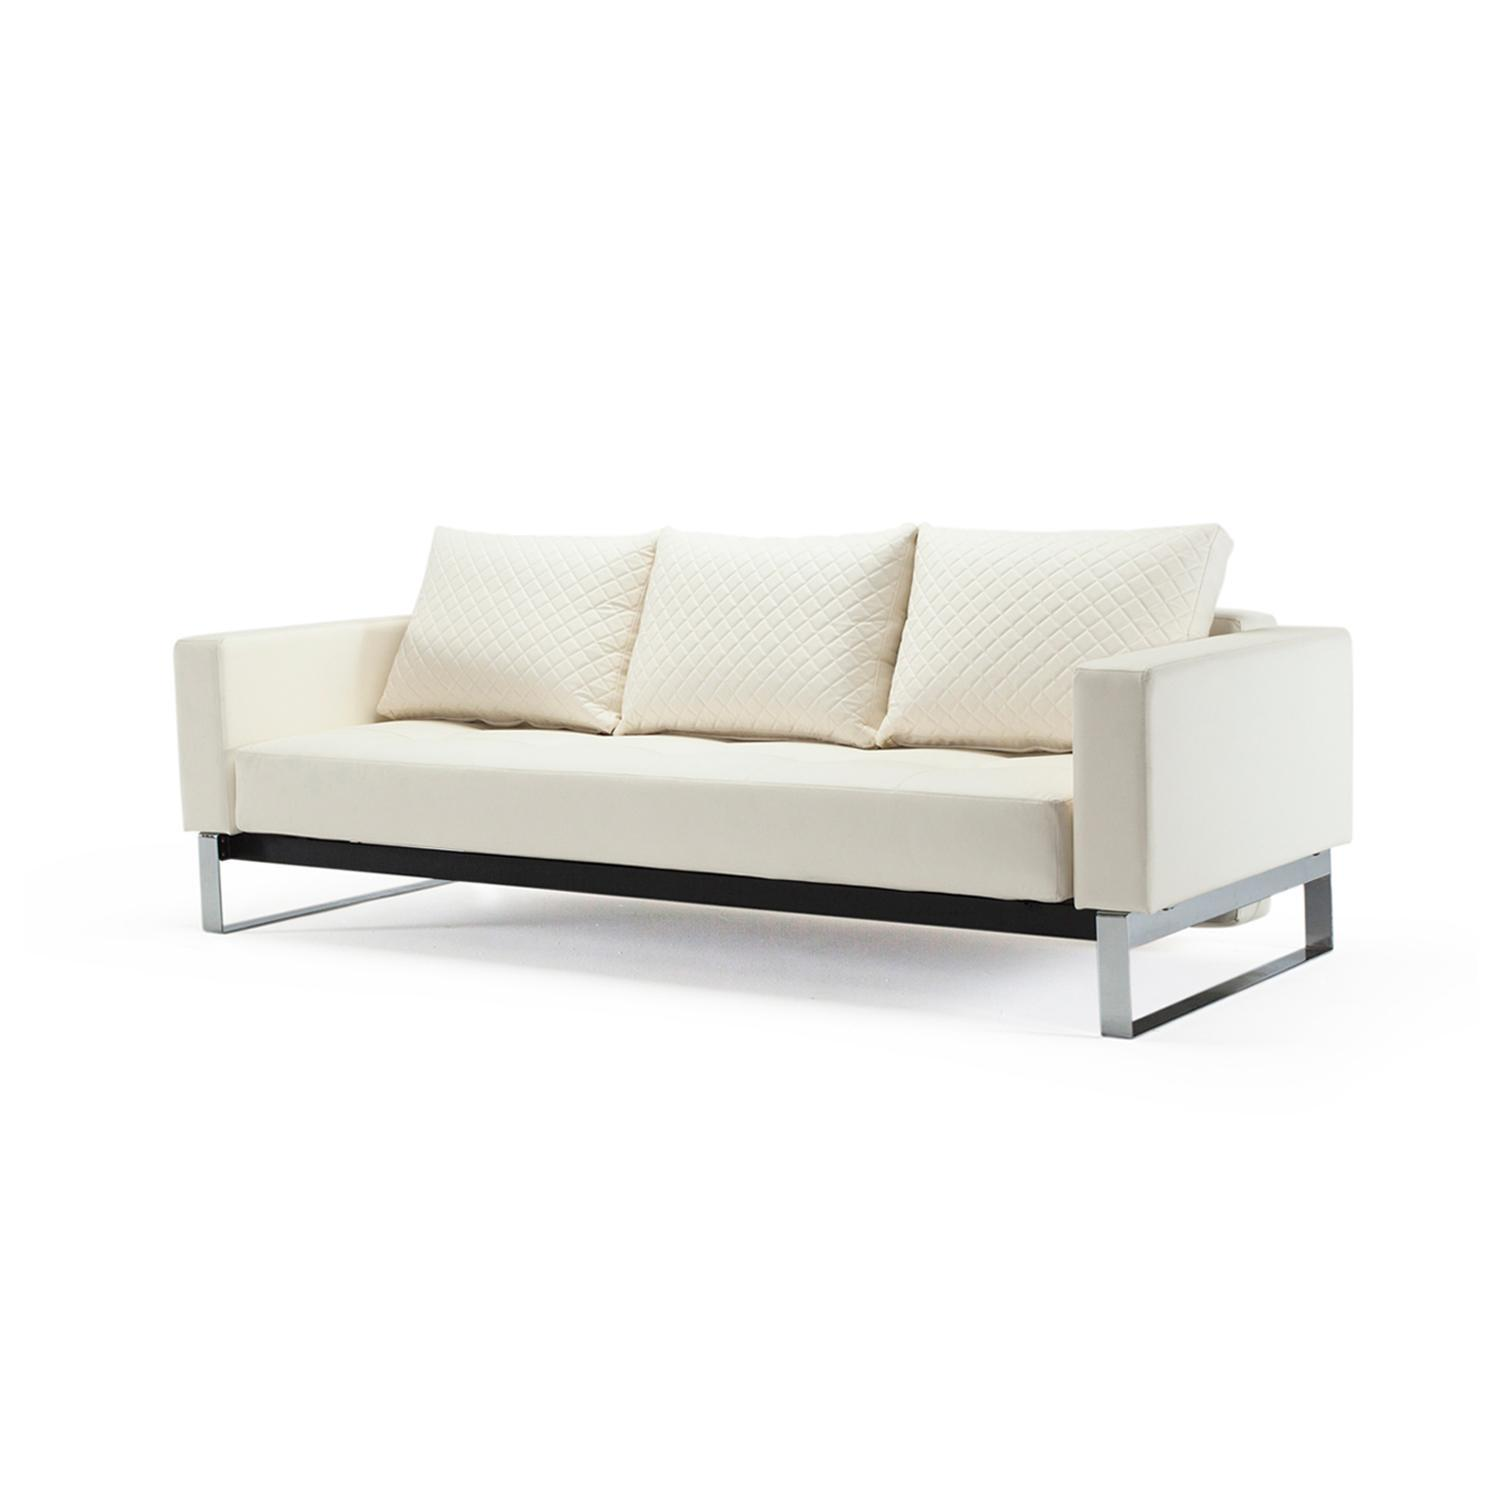 Innovation USA Cassius Quilt Deluxe Sleeper Sofa - image-0